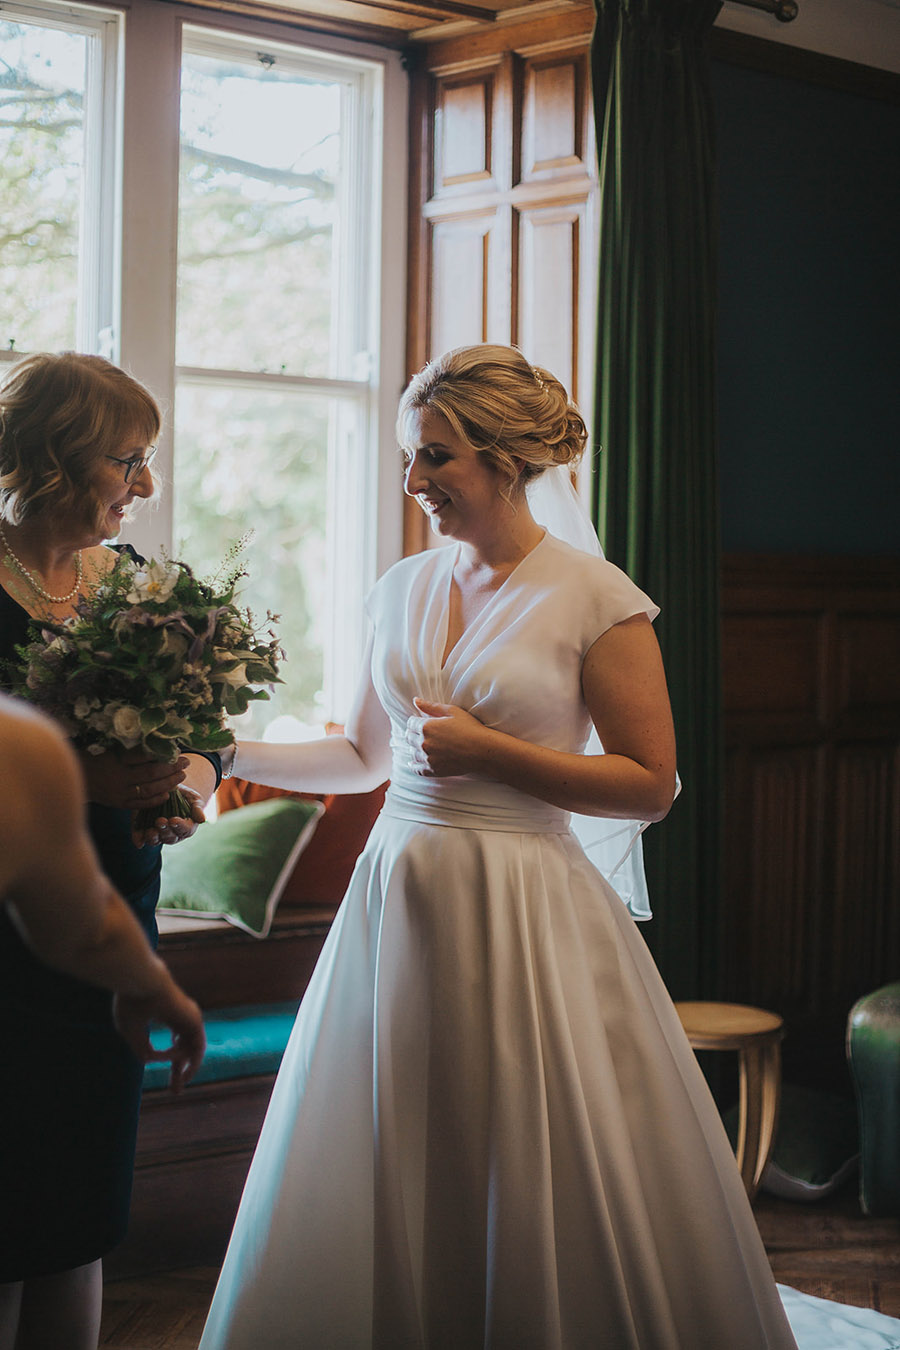 Kath & Adam's creative, DIY wedding at Wyresdale park, with Love Gets Sweeter and Claire Basiuk Photography (20)